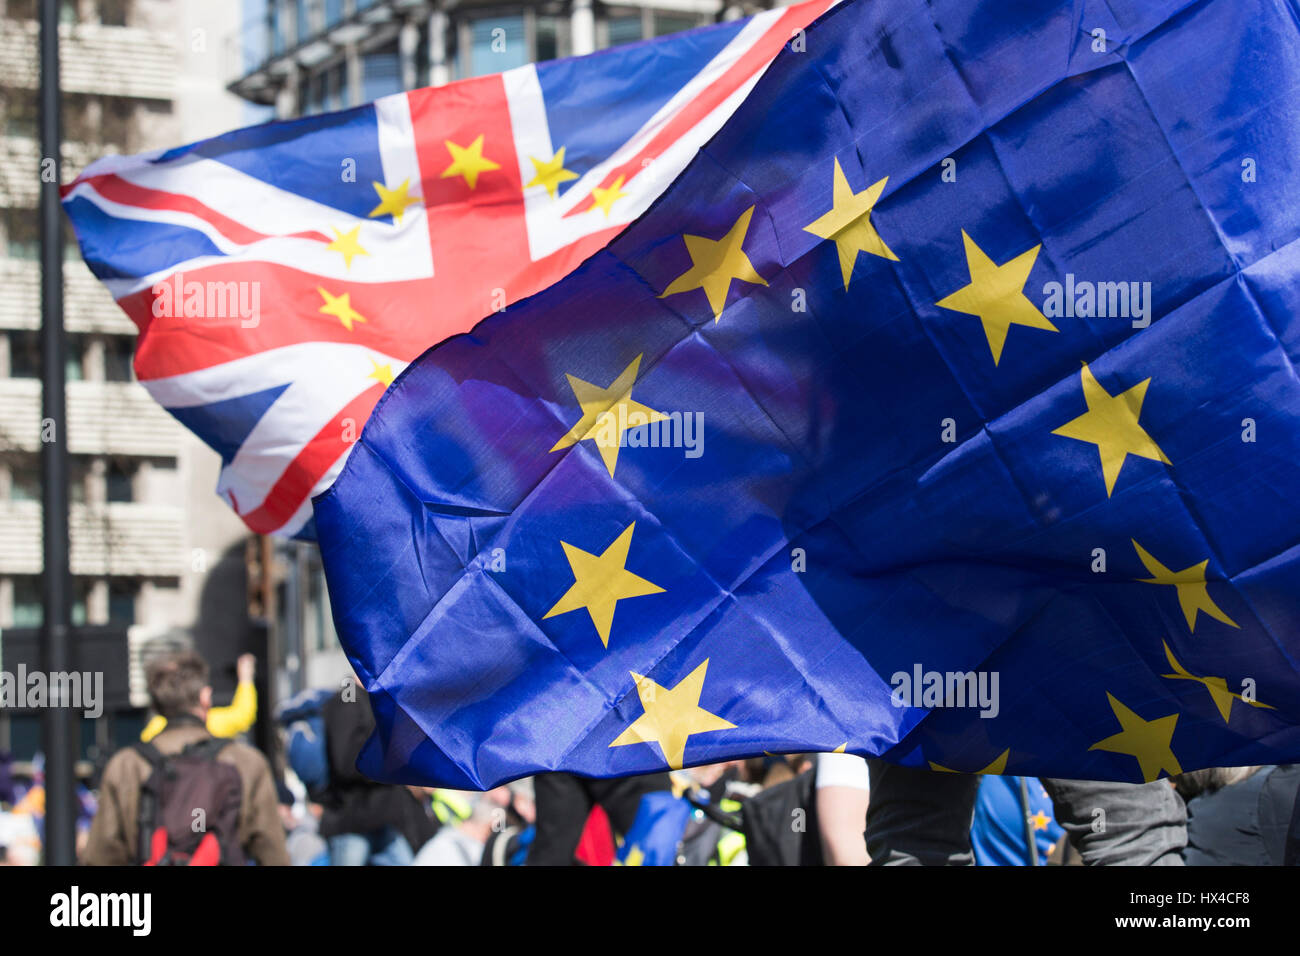 London, UK. 25 March 2017. Union Jack and European Union Flags, Union Flag with yellow EU stars. Unite for Europe - Stock Image